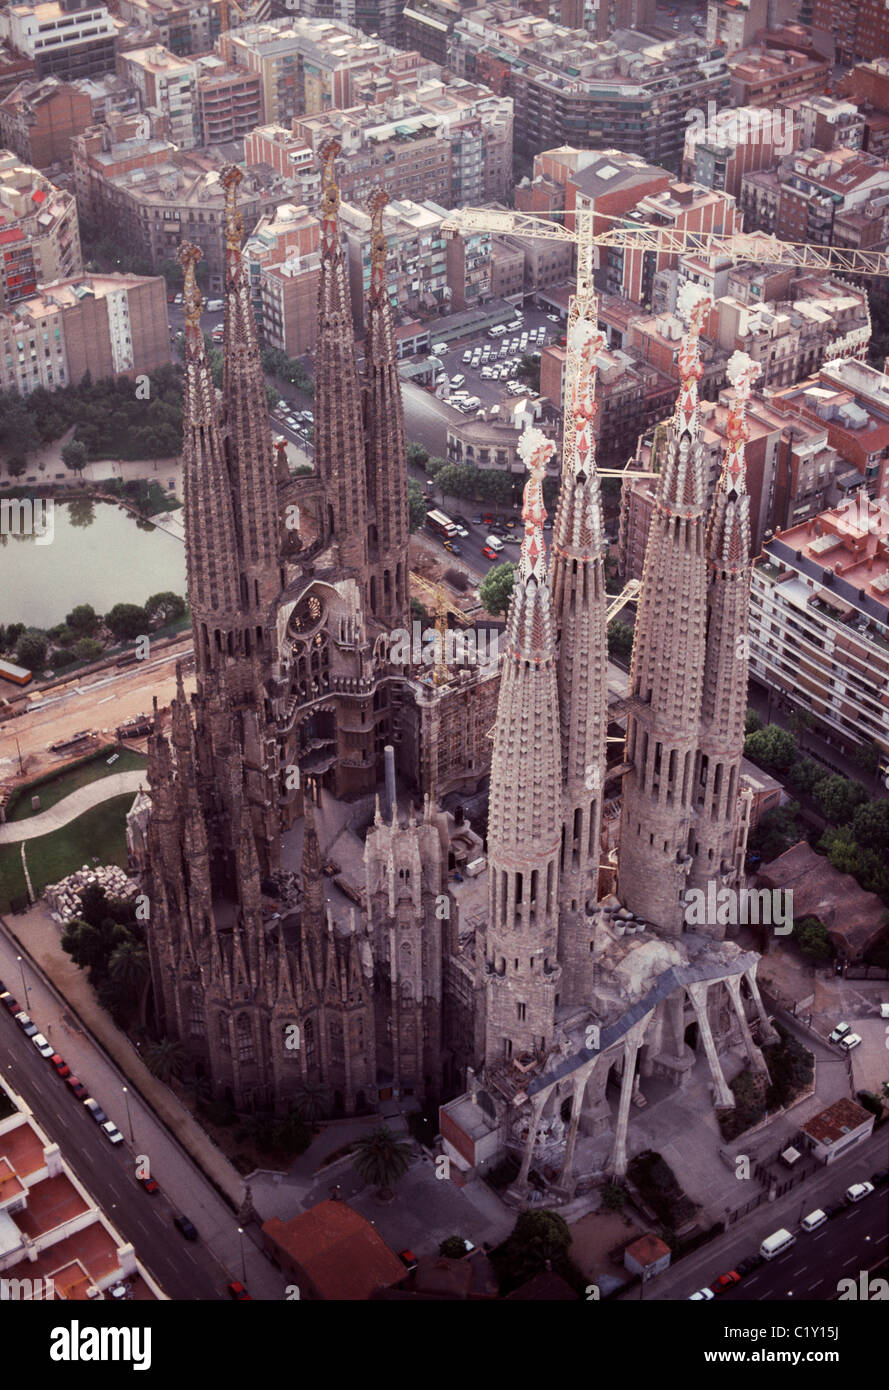 Aerial view over Sagrada Familia Cathedral in Barcelona - Stock Image